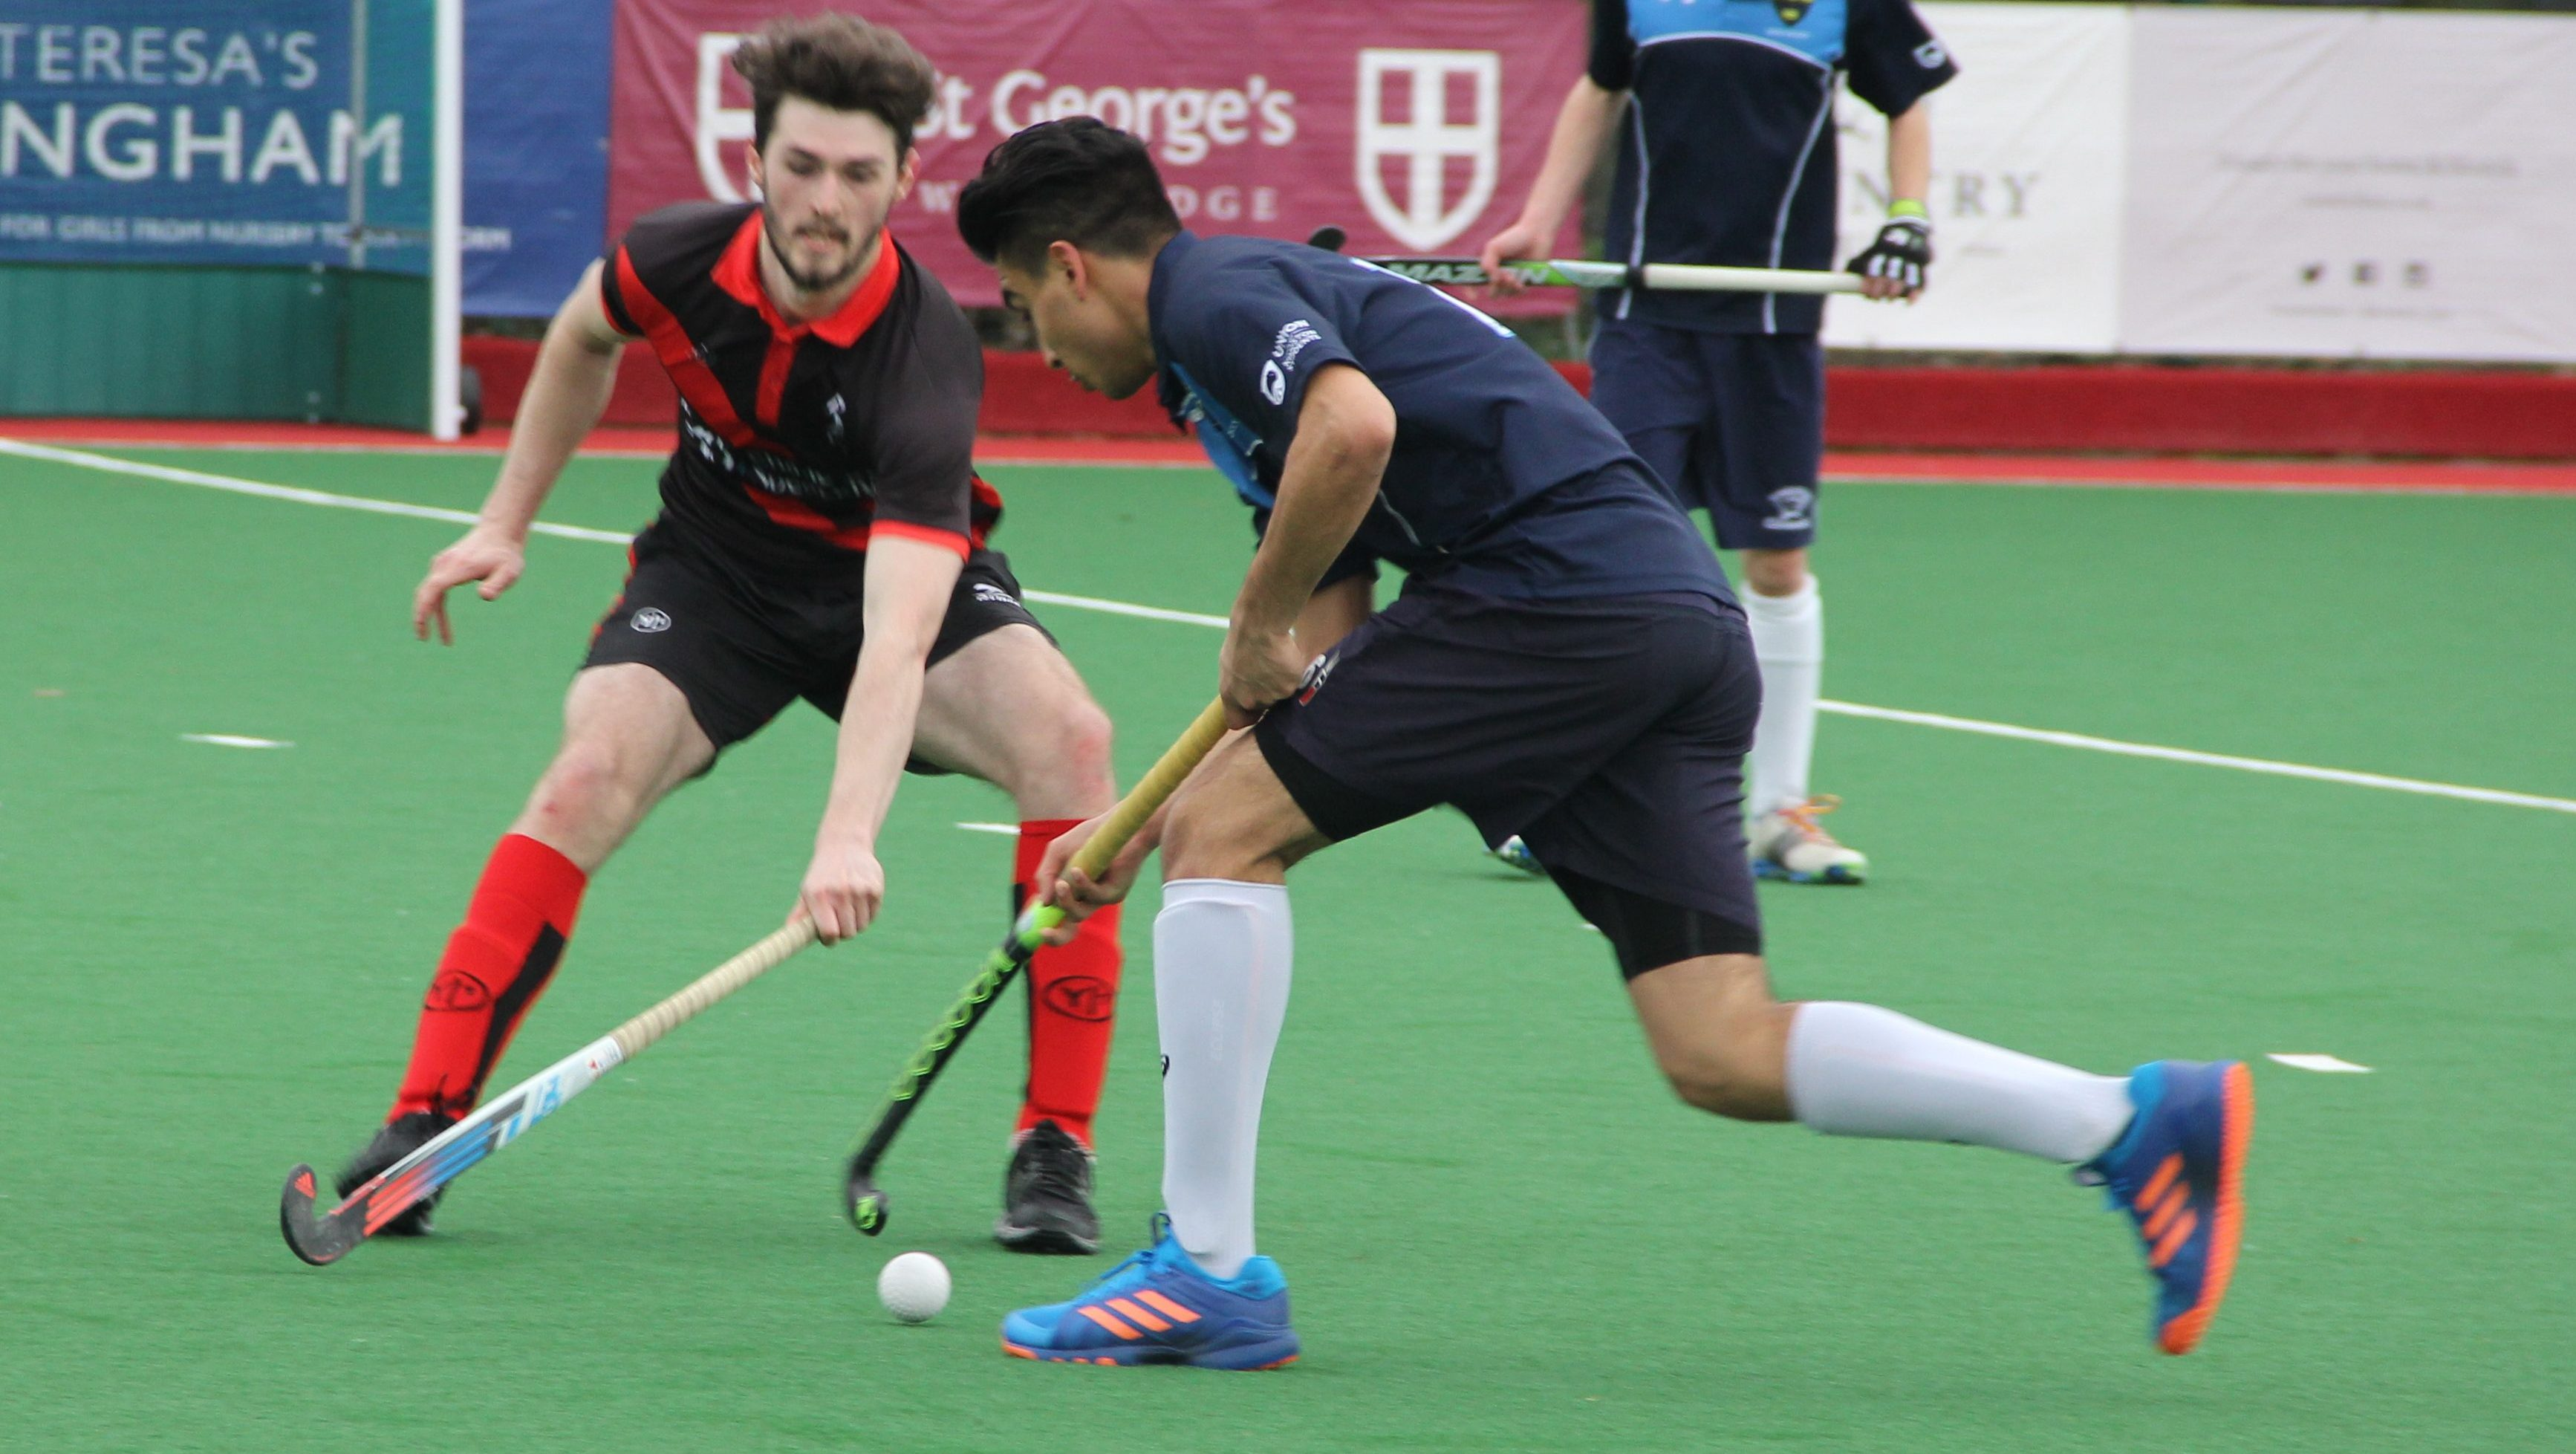 Kingston men's hockey side remain top of the table with just three games left to play. Photo Credit: Soile Ntutu